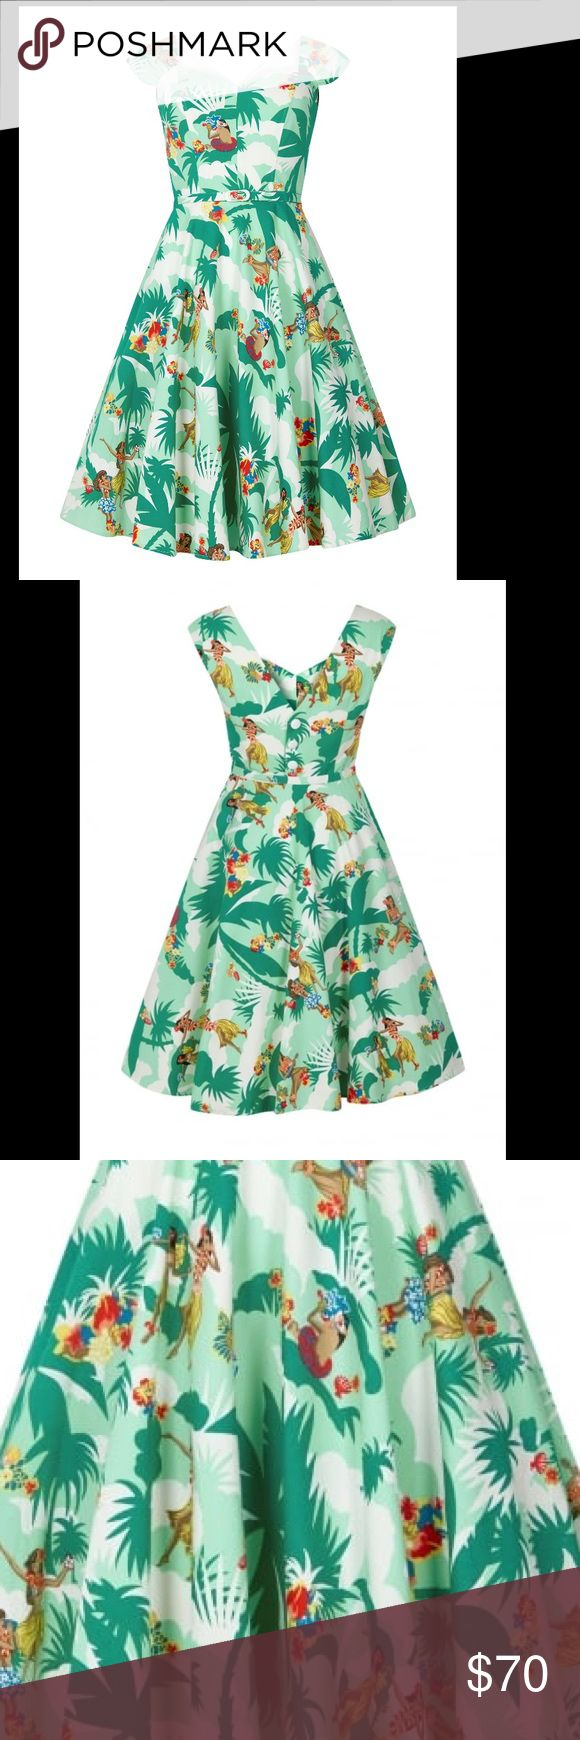 Hawaiian Pinup Vintage Style Swing Dress The Hawaiian Print Dress is sure to put you in the vacation mood, whether you're jetting off or not! , It is made in a crisp cotton blend, with a sweetheart neckline, button up back, matching belt and… POCKETS!  UK 18 fits US 14 see size chart for measurements   Fit is true to size. Dresses